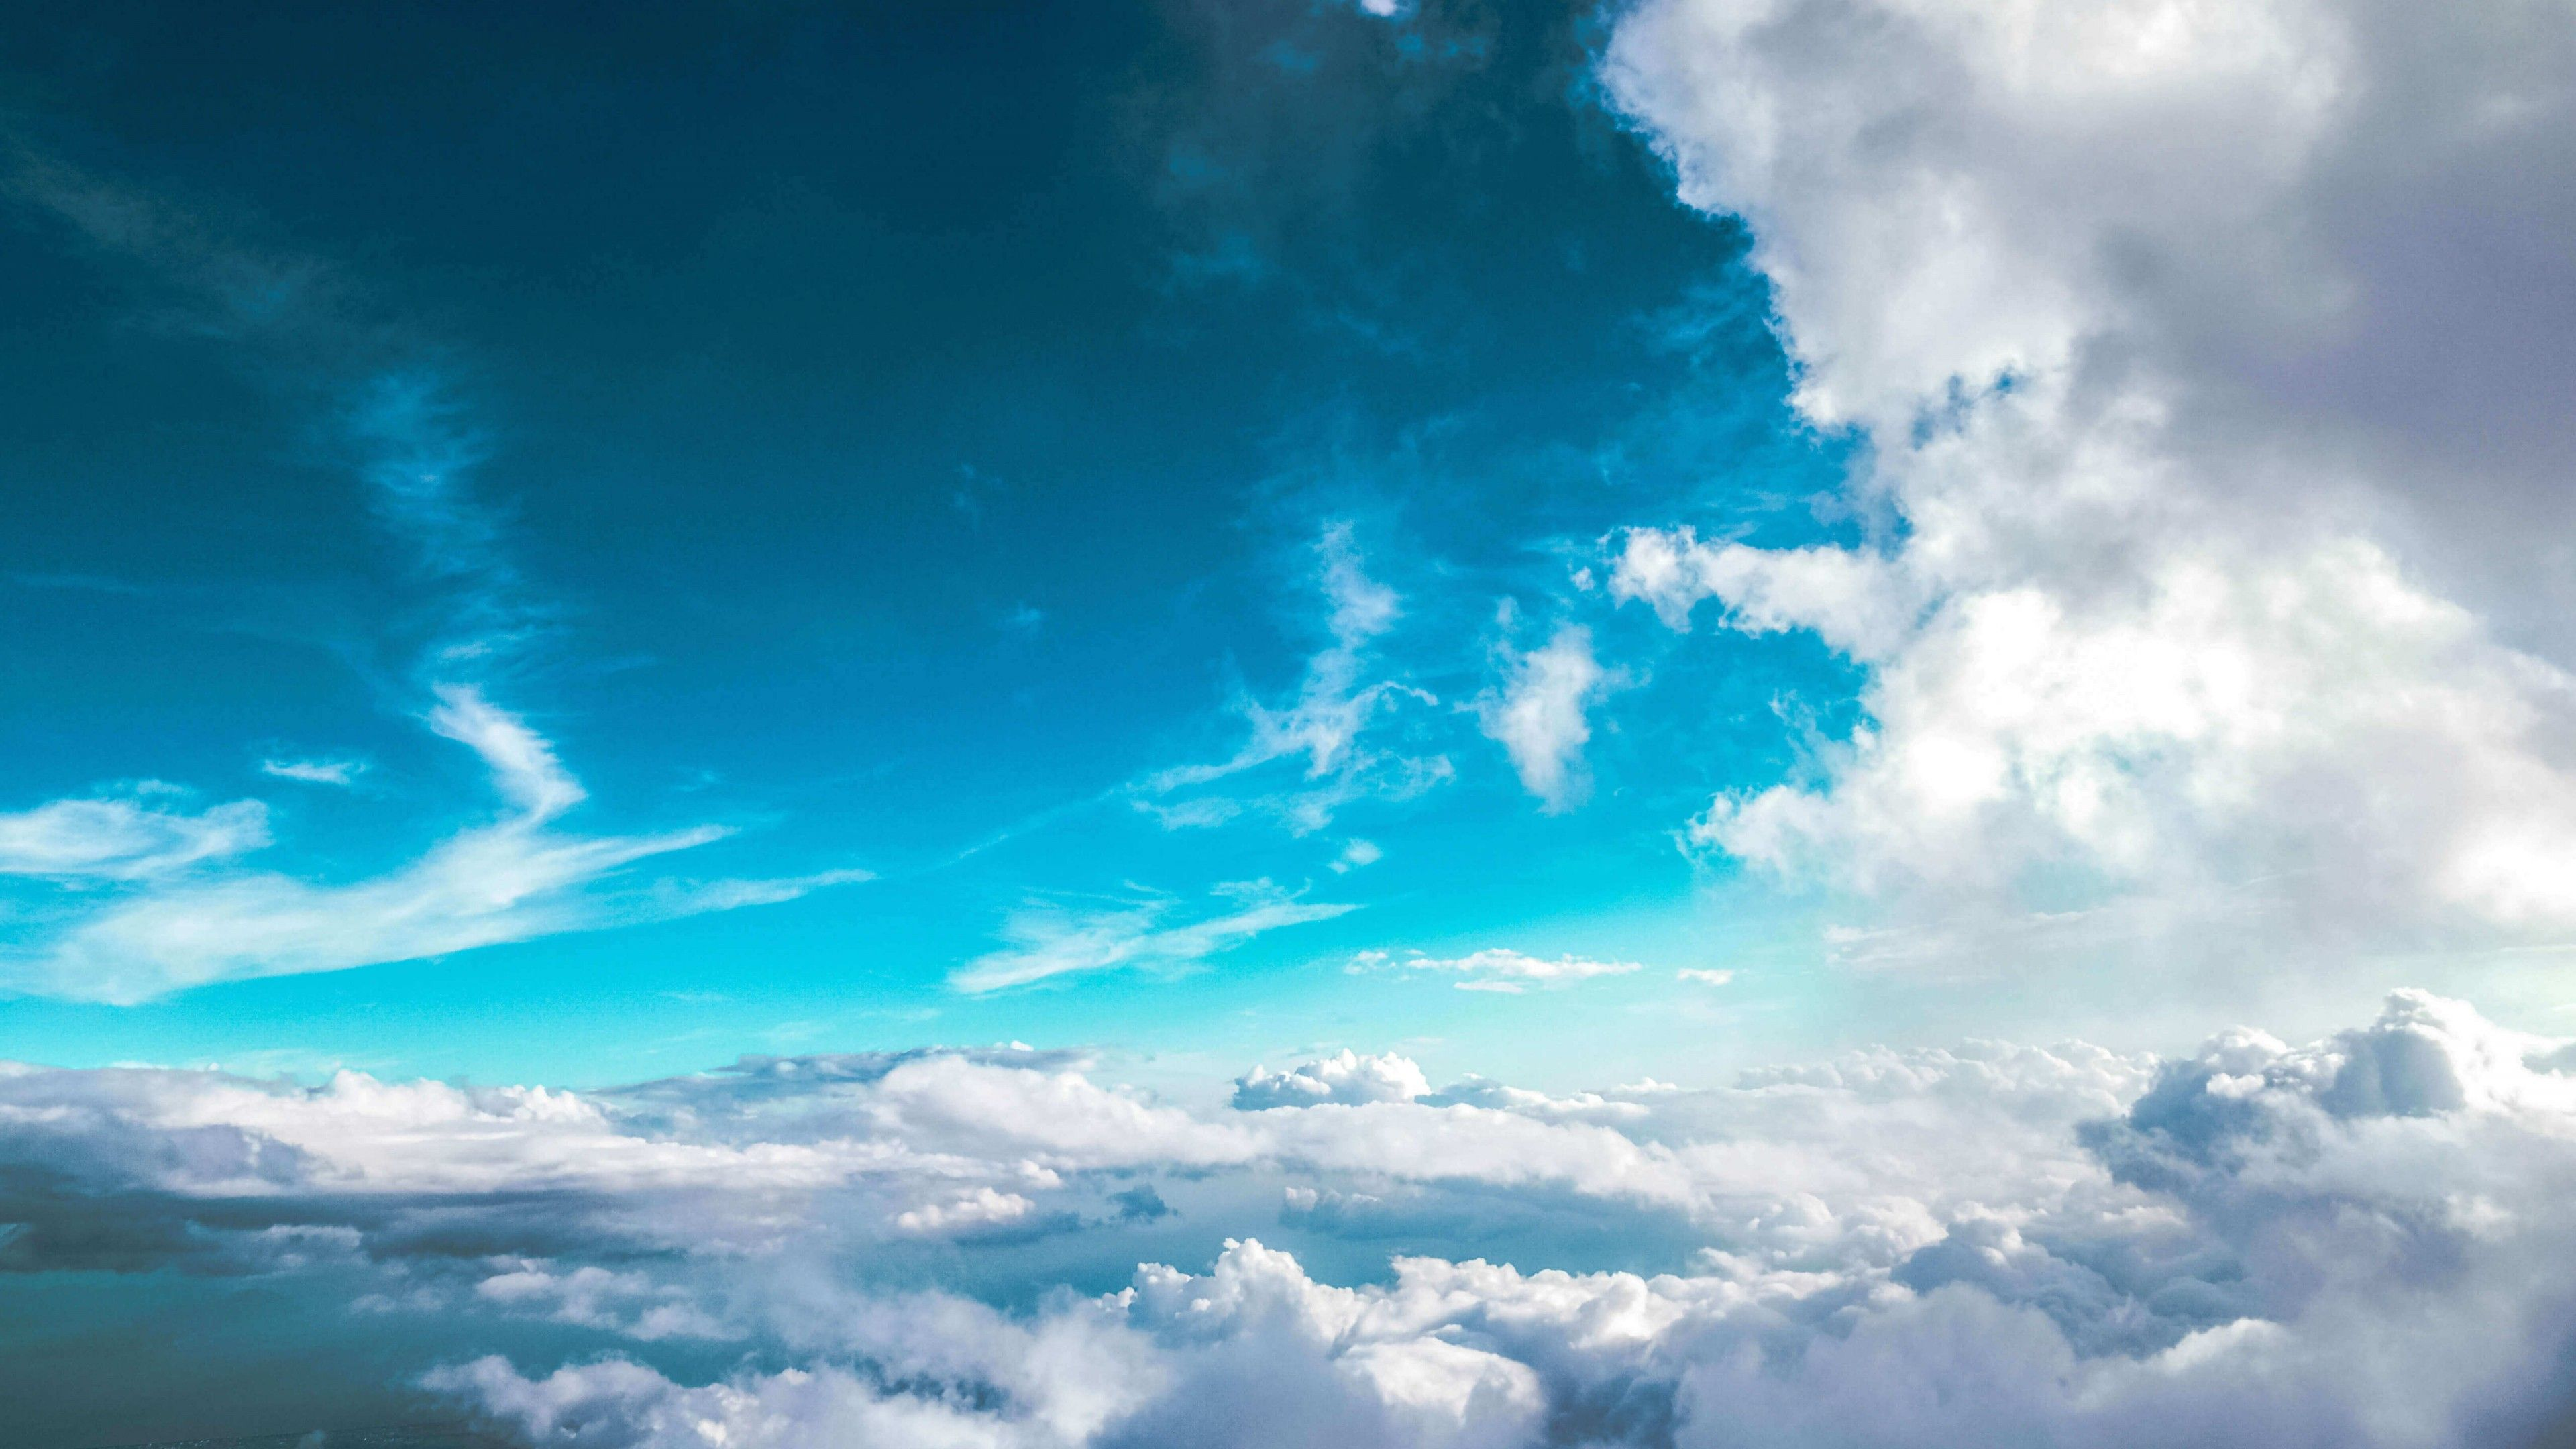 Blue Sky cloud wallpaper 3840x2160 4K ultra HD - http://www.hd1080pwallpaper